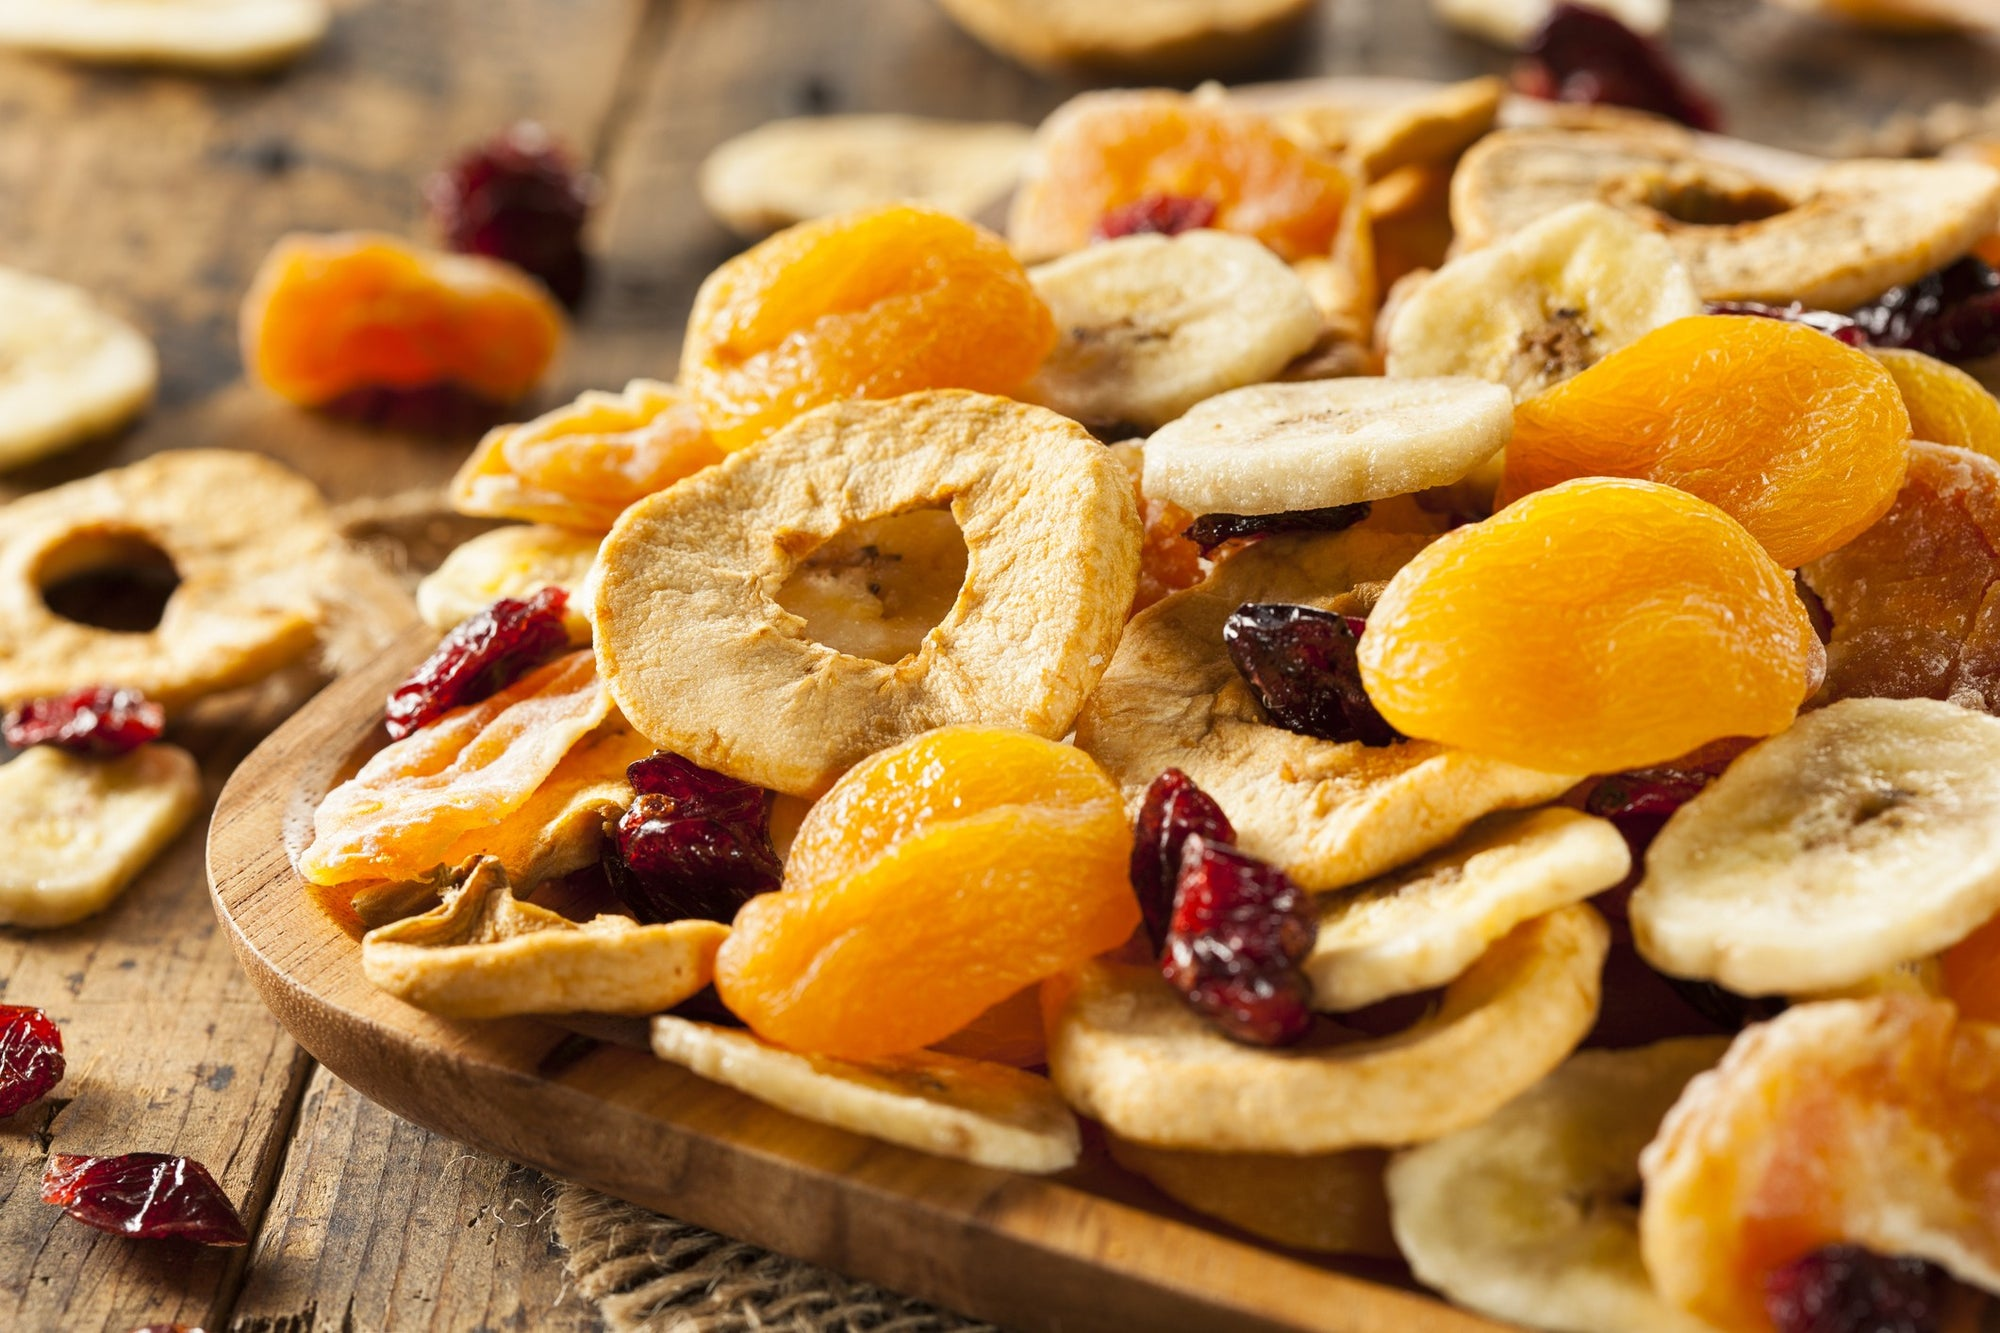 5 Healthy Ways to Add Dried Fruit Into Your Meals